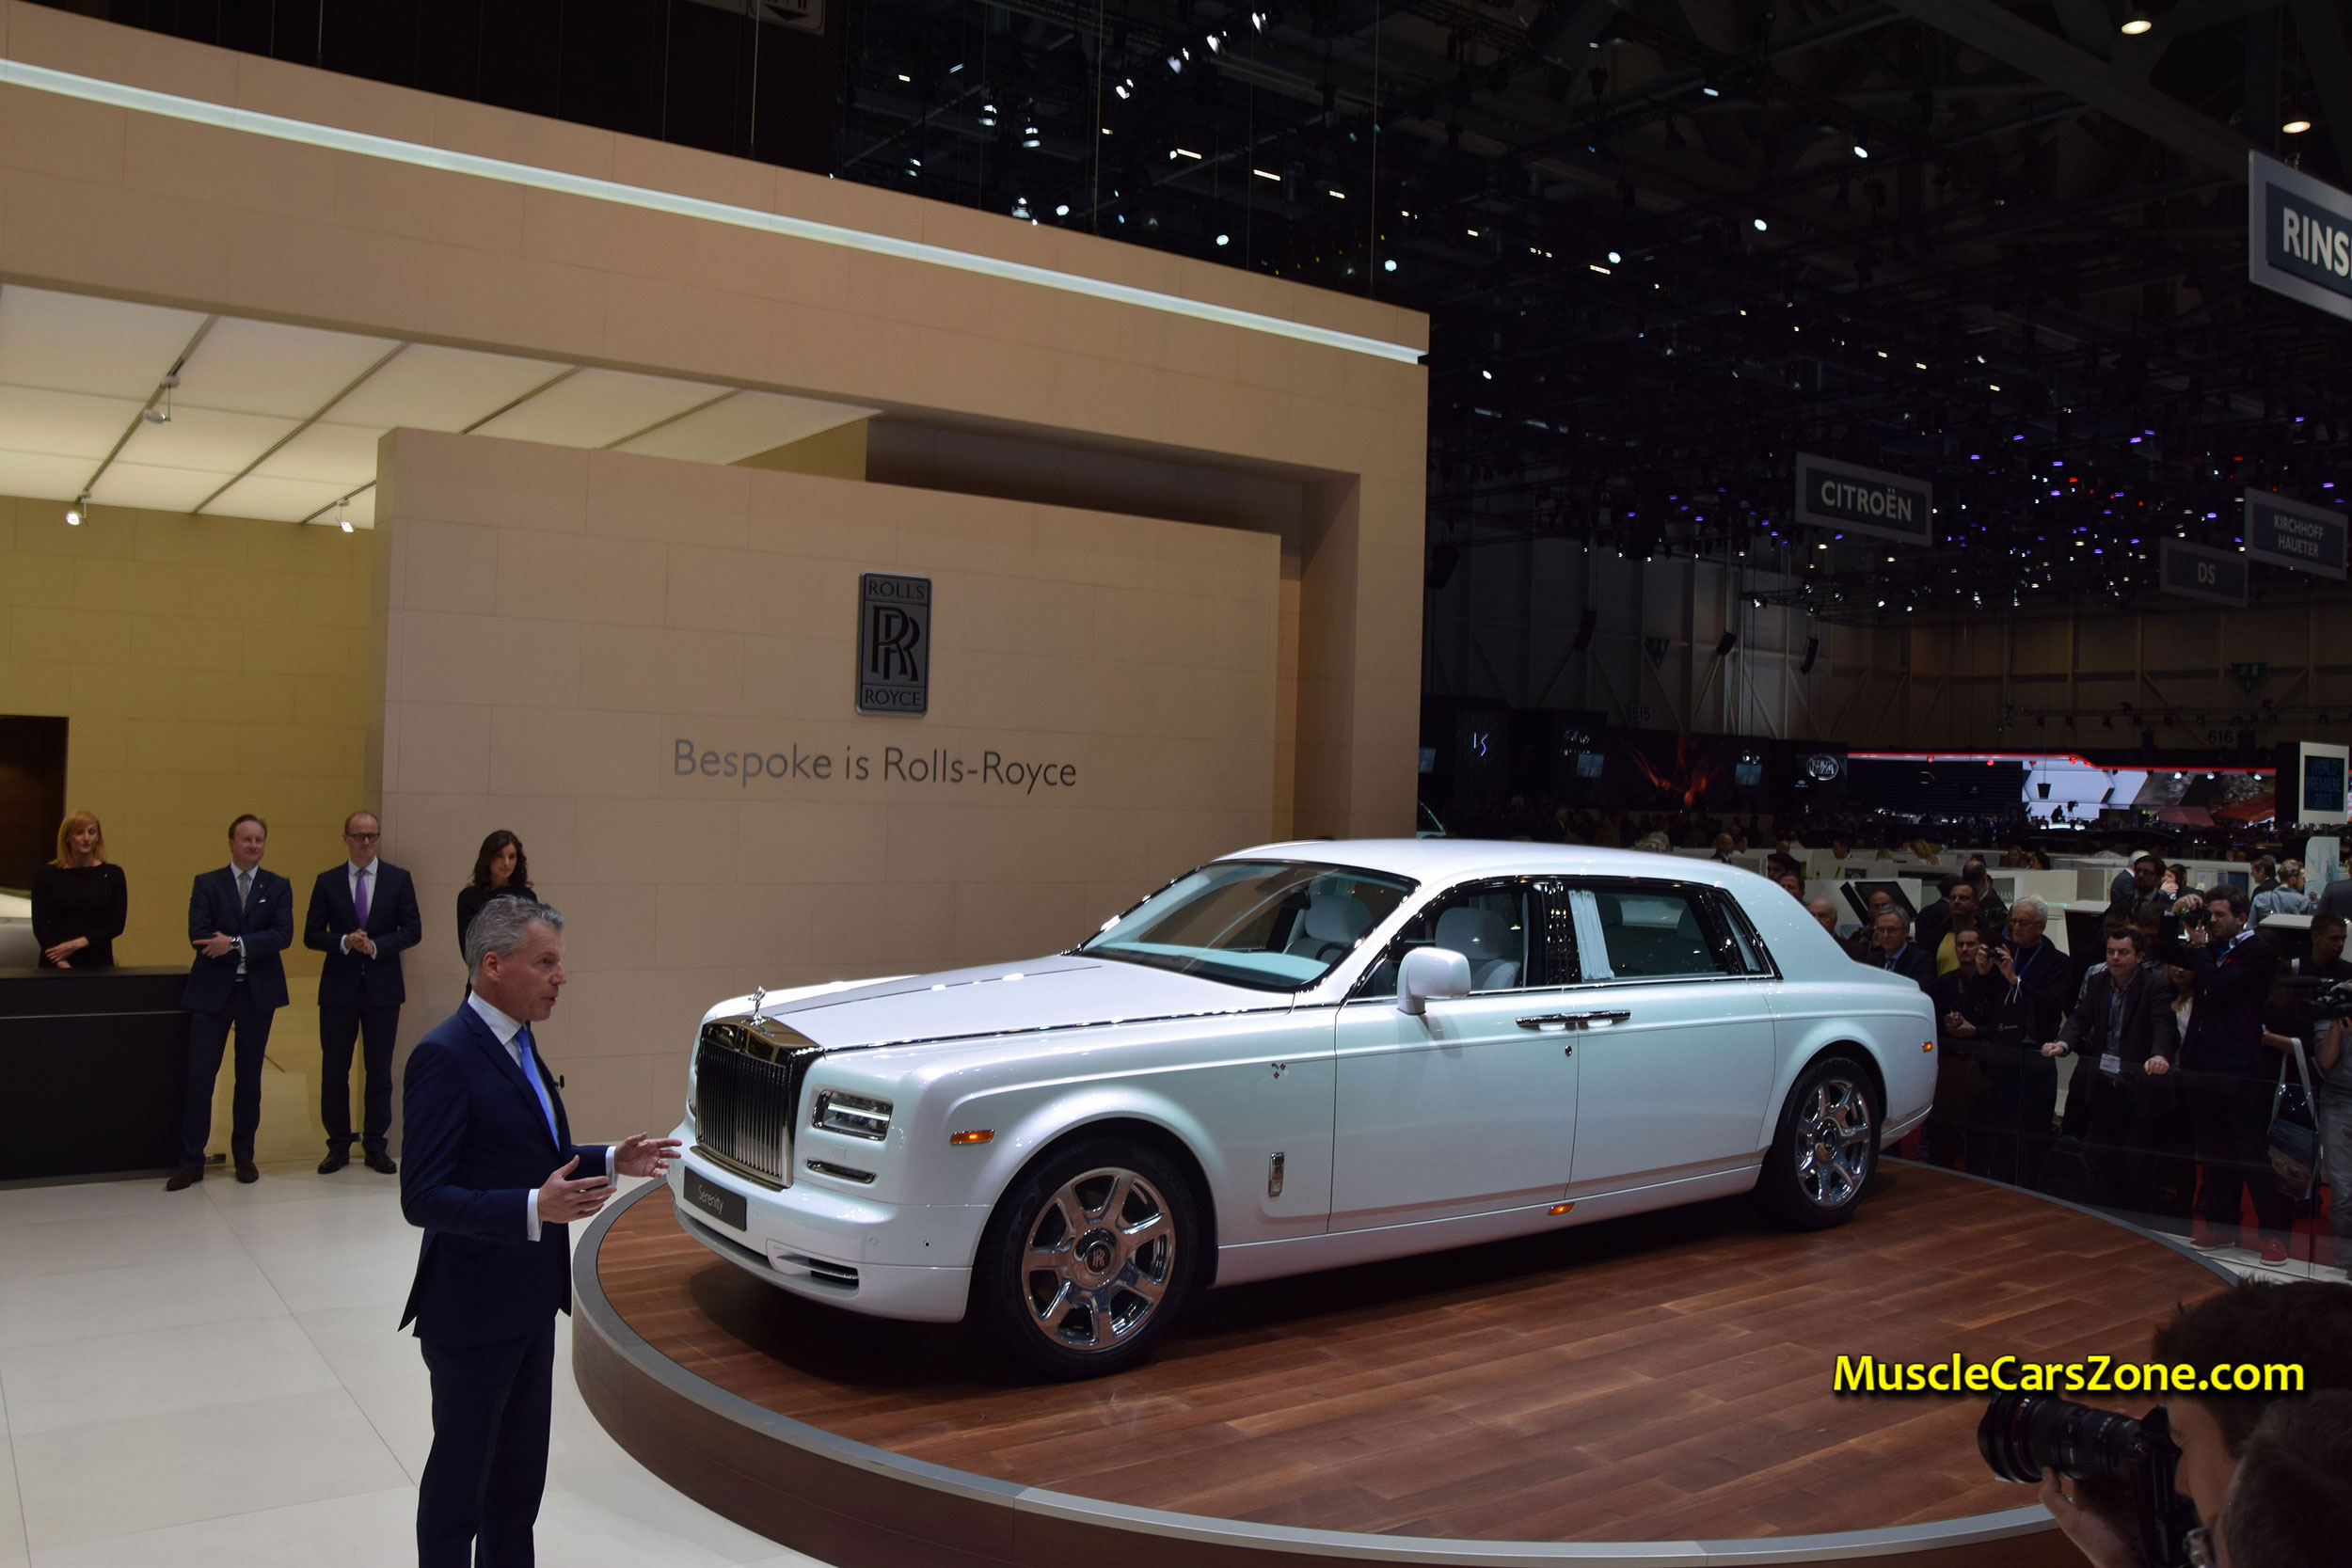 2015-Rolls-Royce-Press-Conference---The-New-Rolls-Royce-Serenity-21---2015-Geneva-Motor-Show-